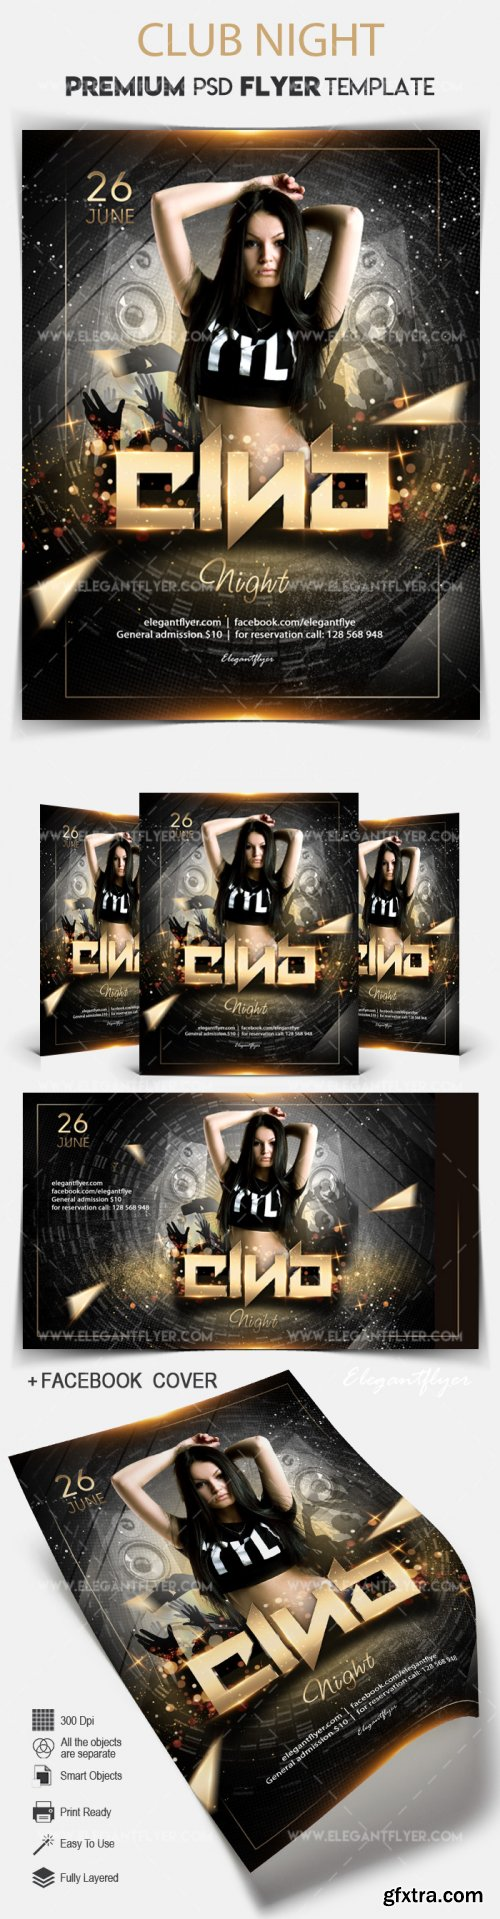 Club Night V11 2018 Flyer PSD Template